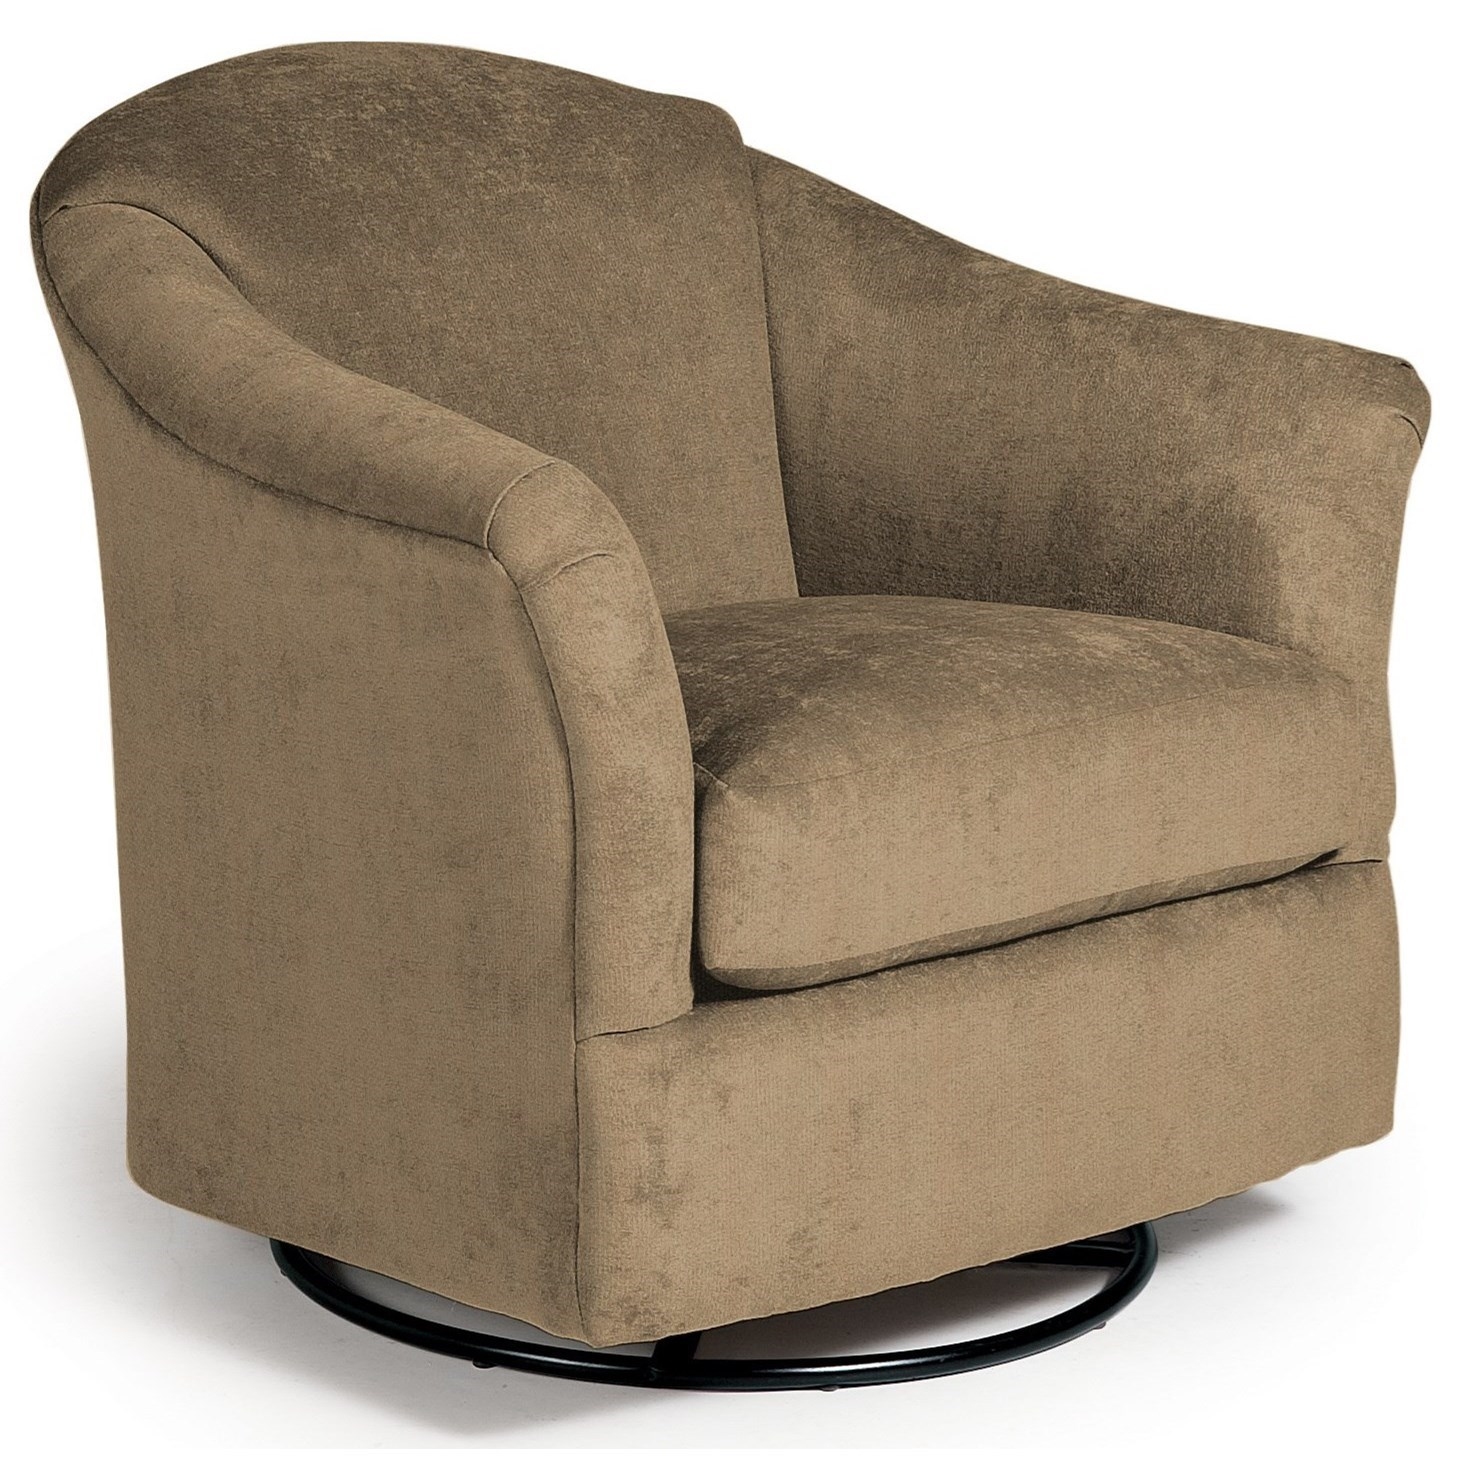 Best Home Furnishings Swivel Glide Chairs Darby Swivel